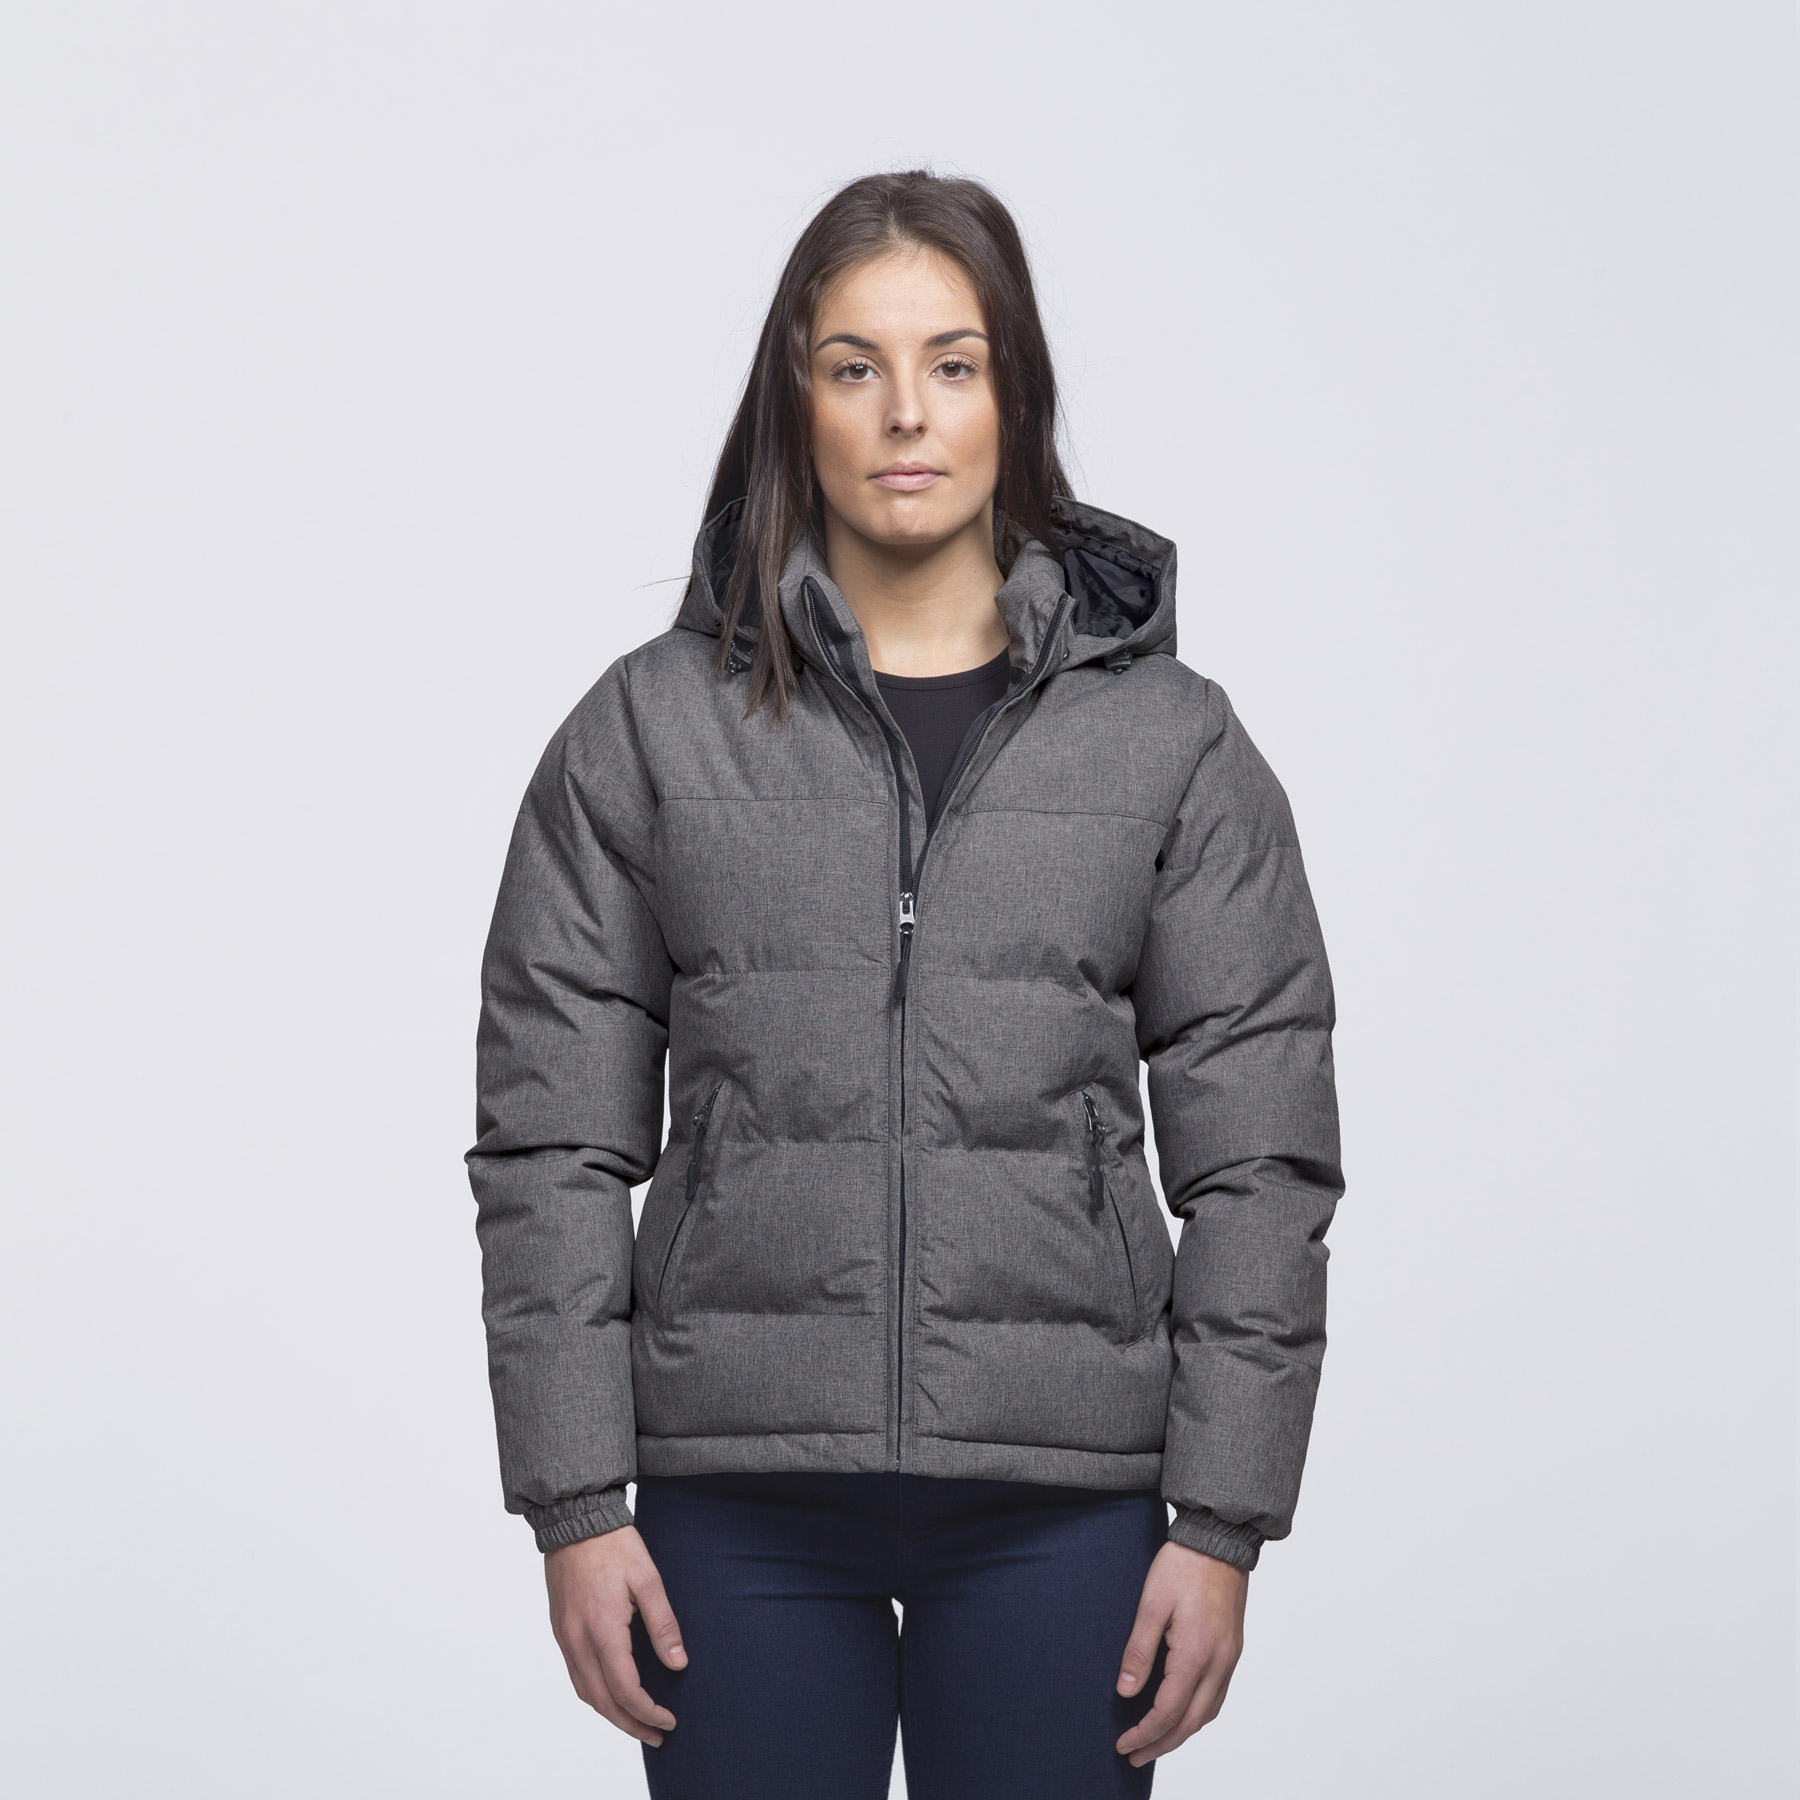 Liz Claiborne Heavyweight Water Resistant Puffer Jacket-Plus. Add To Cart. New. from $ after coupon. Free Country Hooded Water Resistant Lightweight Softshell Jacket-Plus. Add To Cart. Only at JCP. Women's Nike Gym Vintage Lightweight Jacket (10) Add To Cart. $ after coupon. was $ Excelled Leather Heavyweight Puffer Jacket. Add.